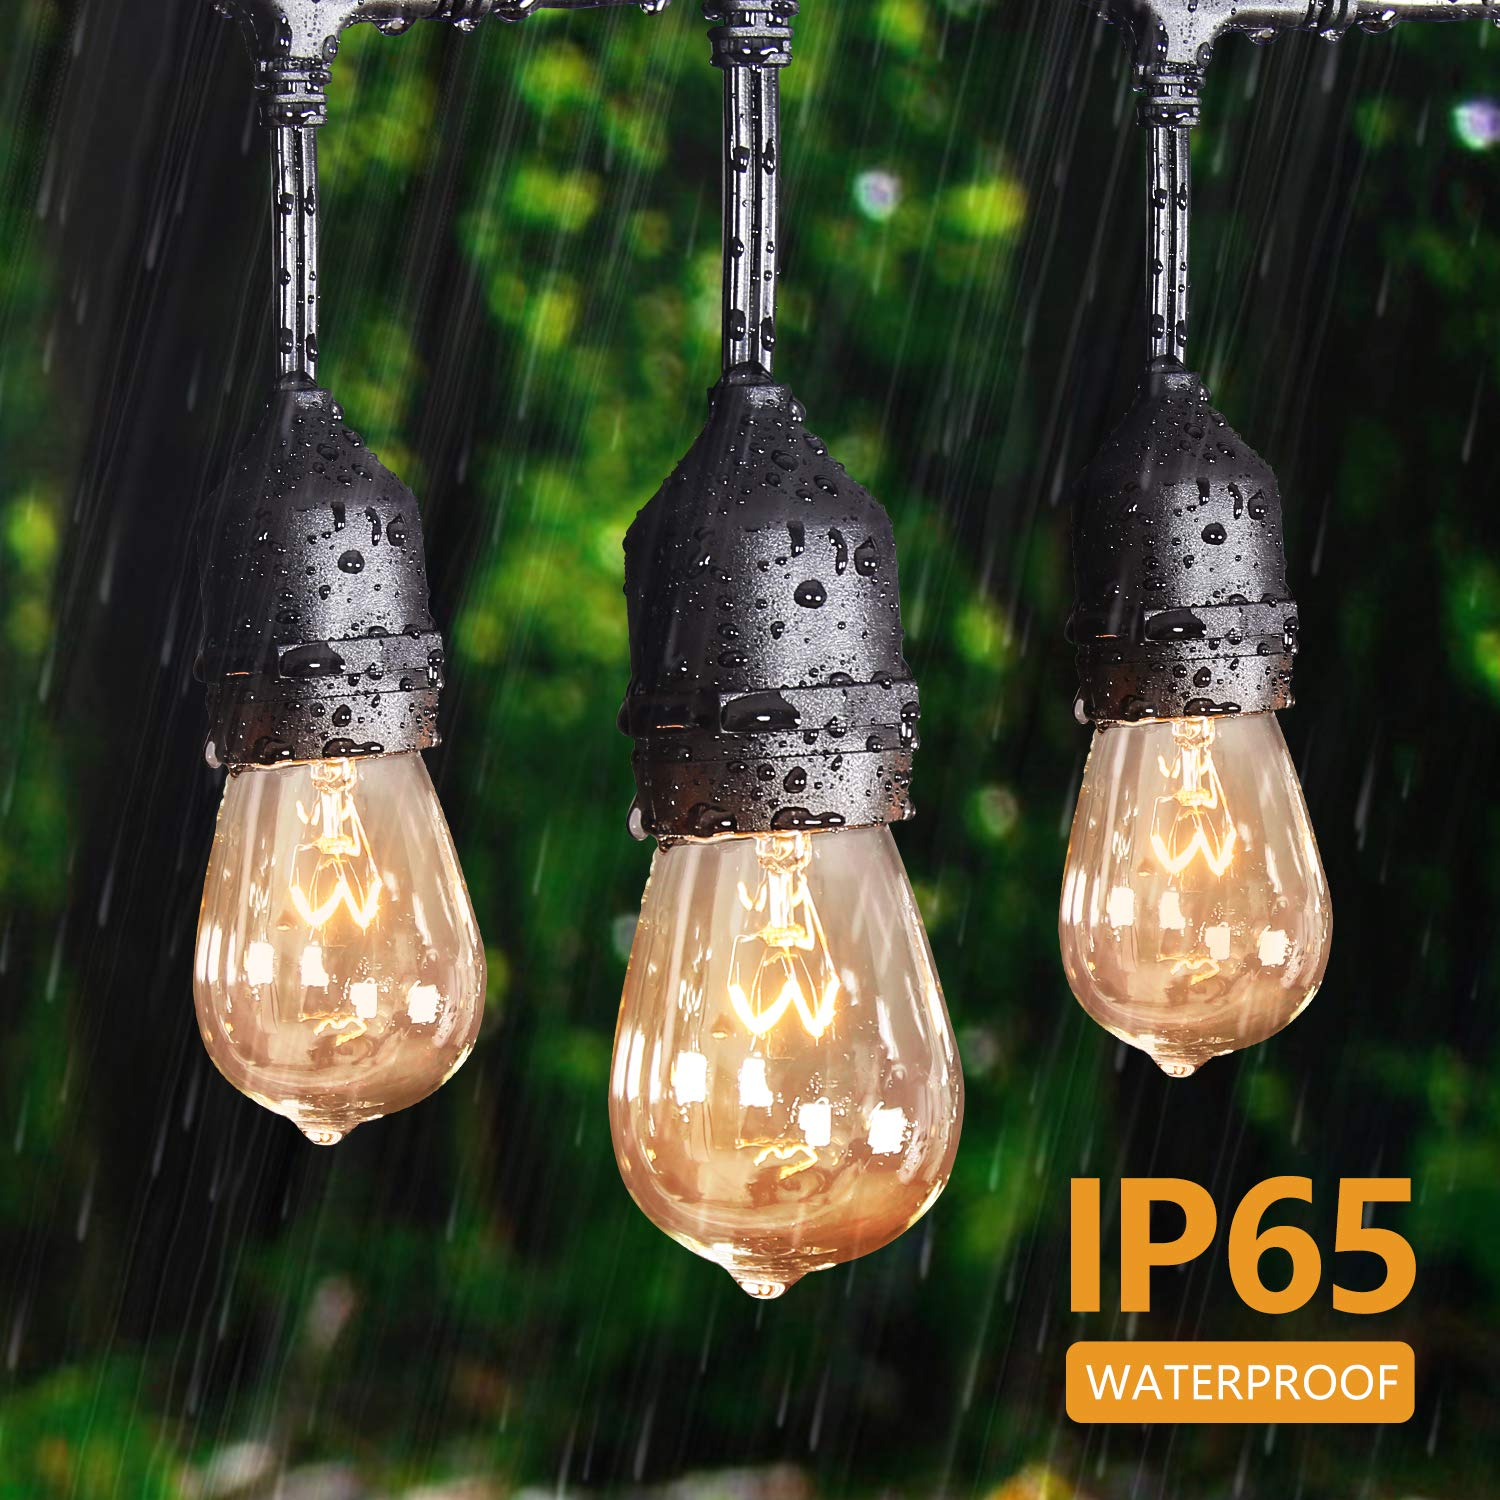 Amico 52ft Color Outdoor String Lights Commercial Grade Weatherproof Patio Lights Dimmable Color Bulbs UL Listed Heavy-Duty Outside Hanging Decorative Bistro Market Caf/é Lights